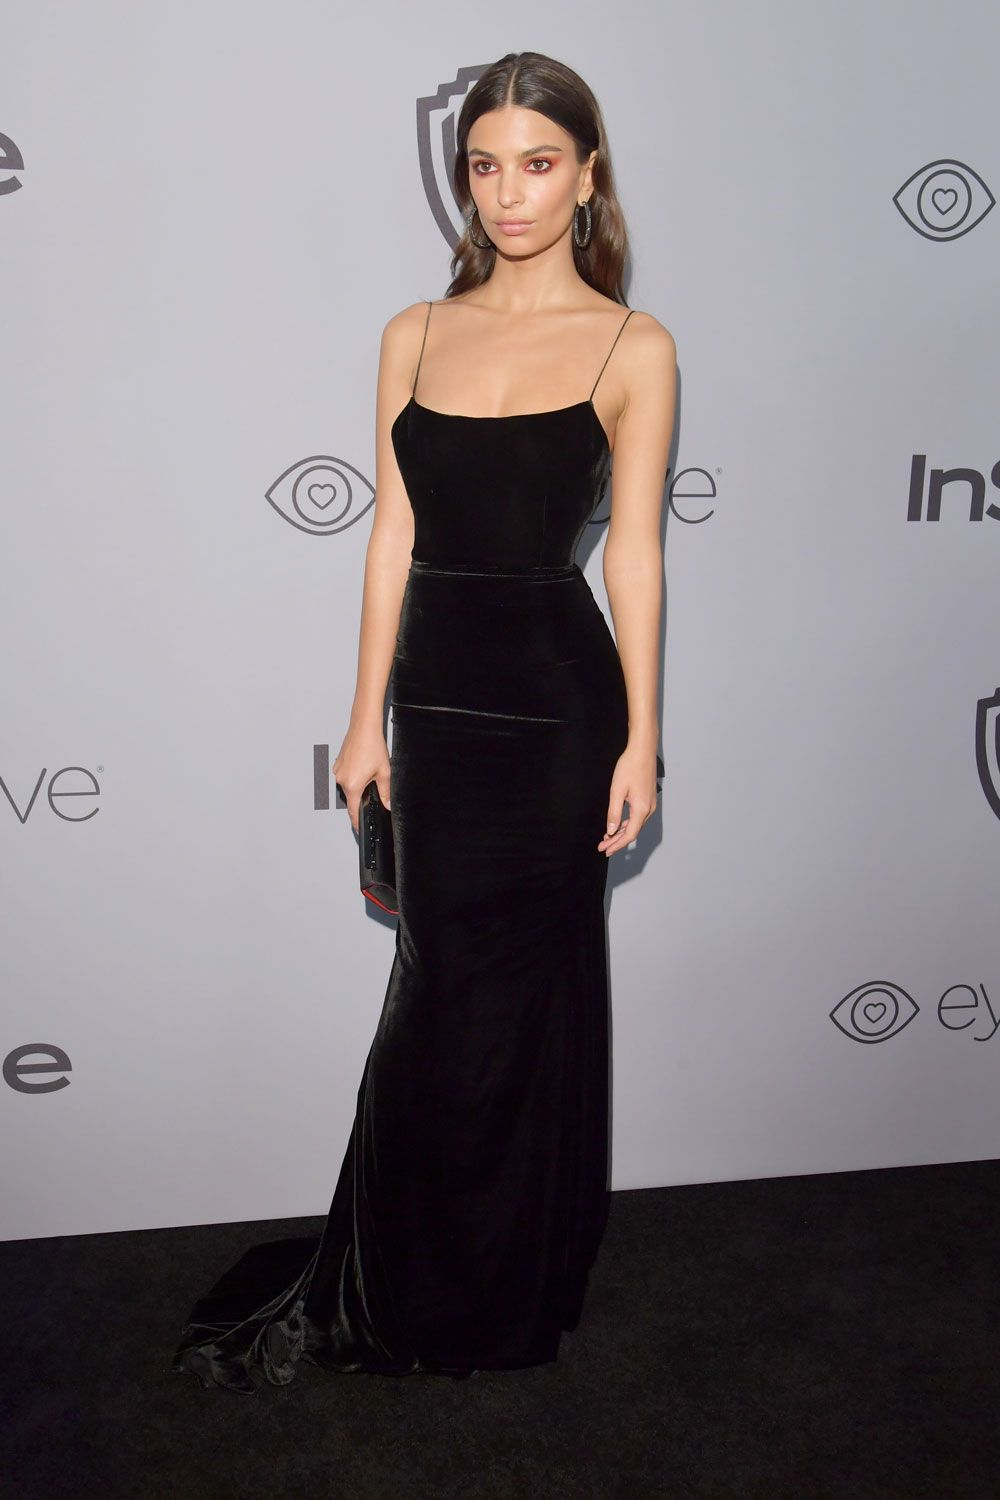 Golden Globes after party - Emily Ratajkowski